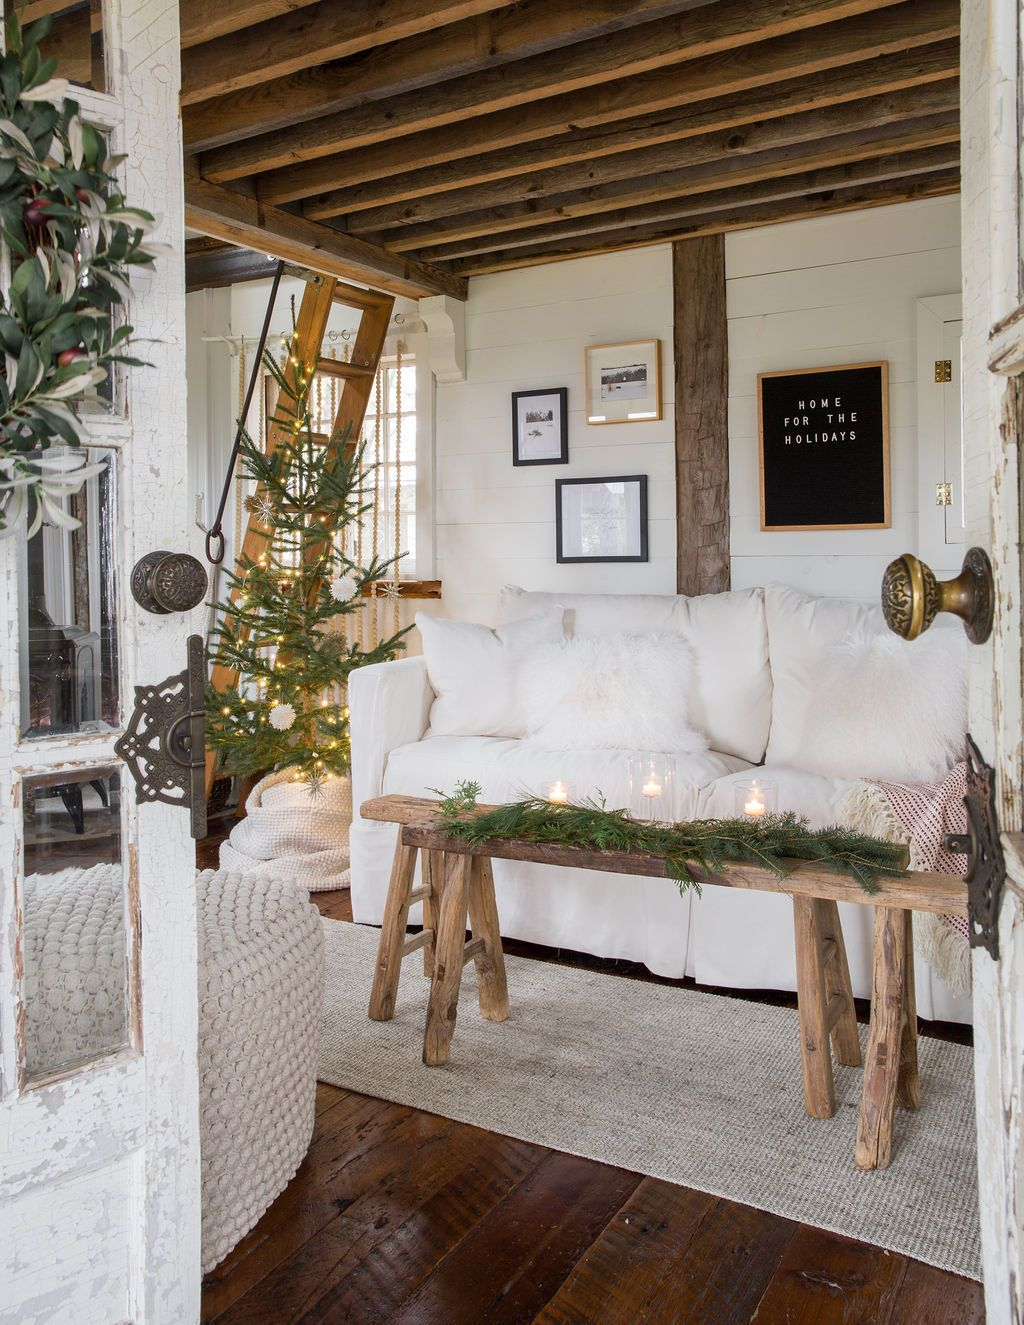 Formidable Crate And Barrel Holiday Decor Ideas Home